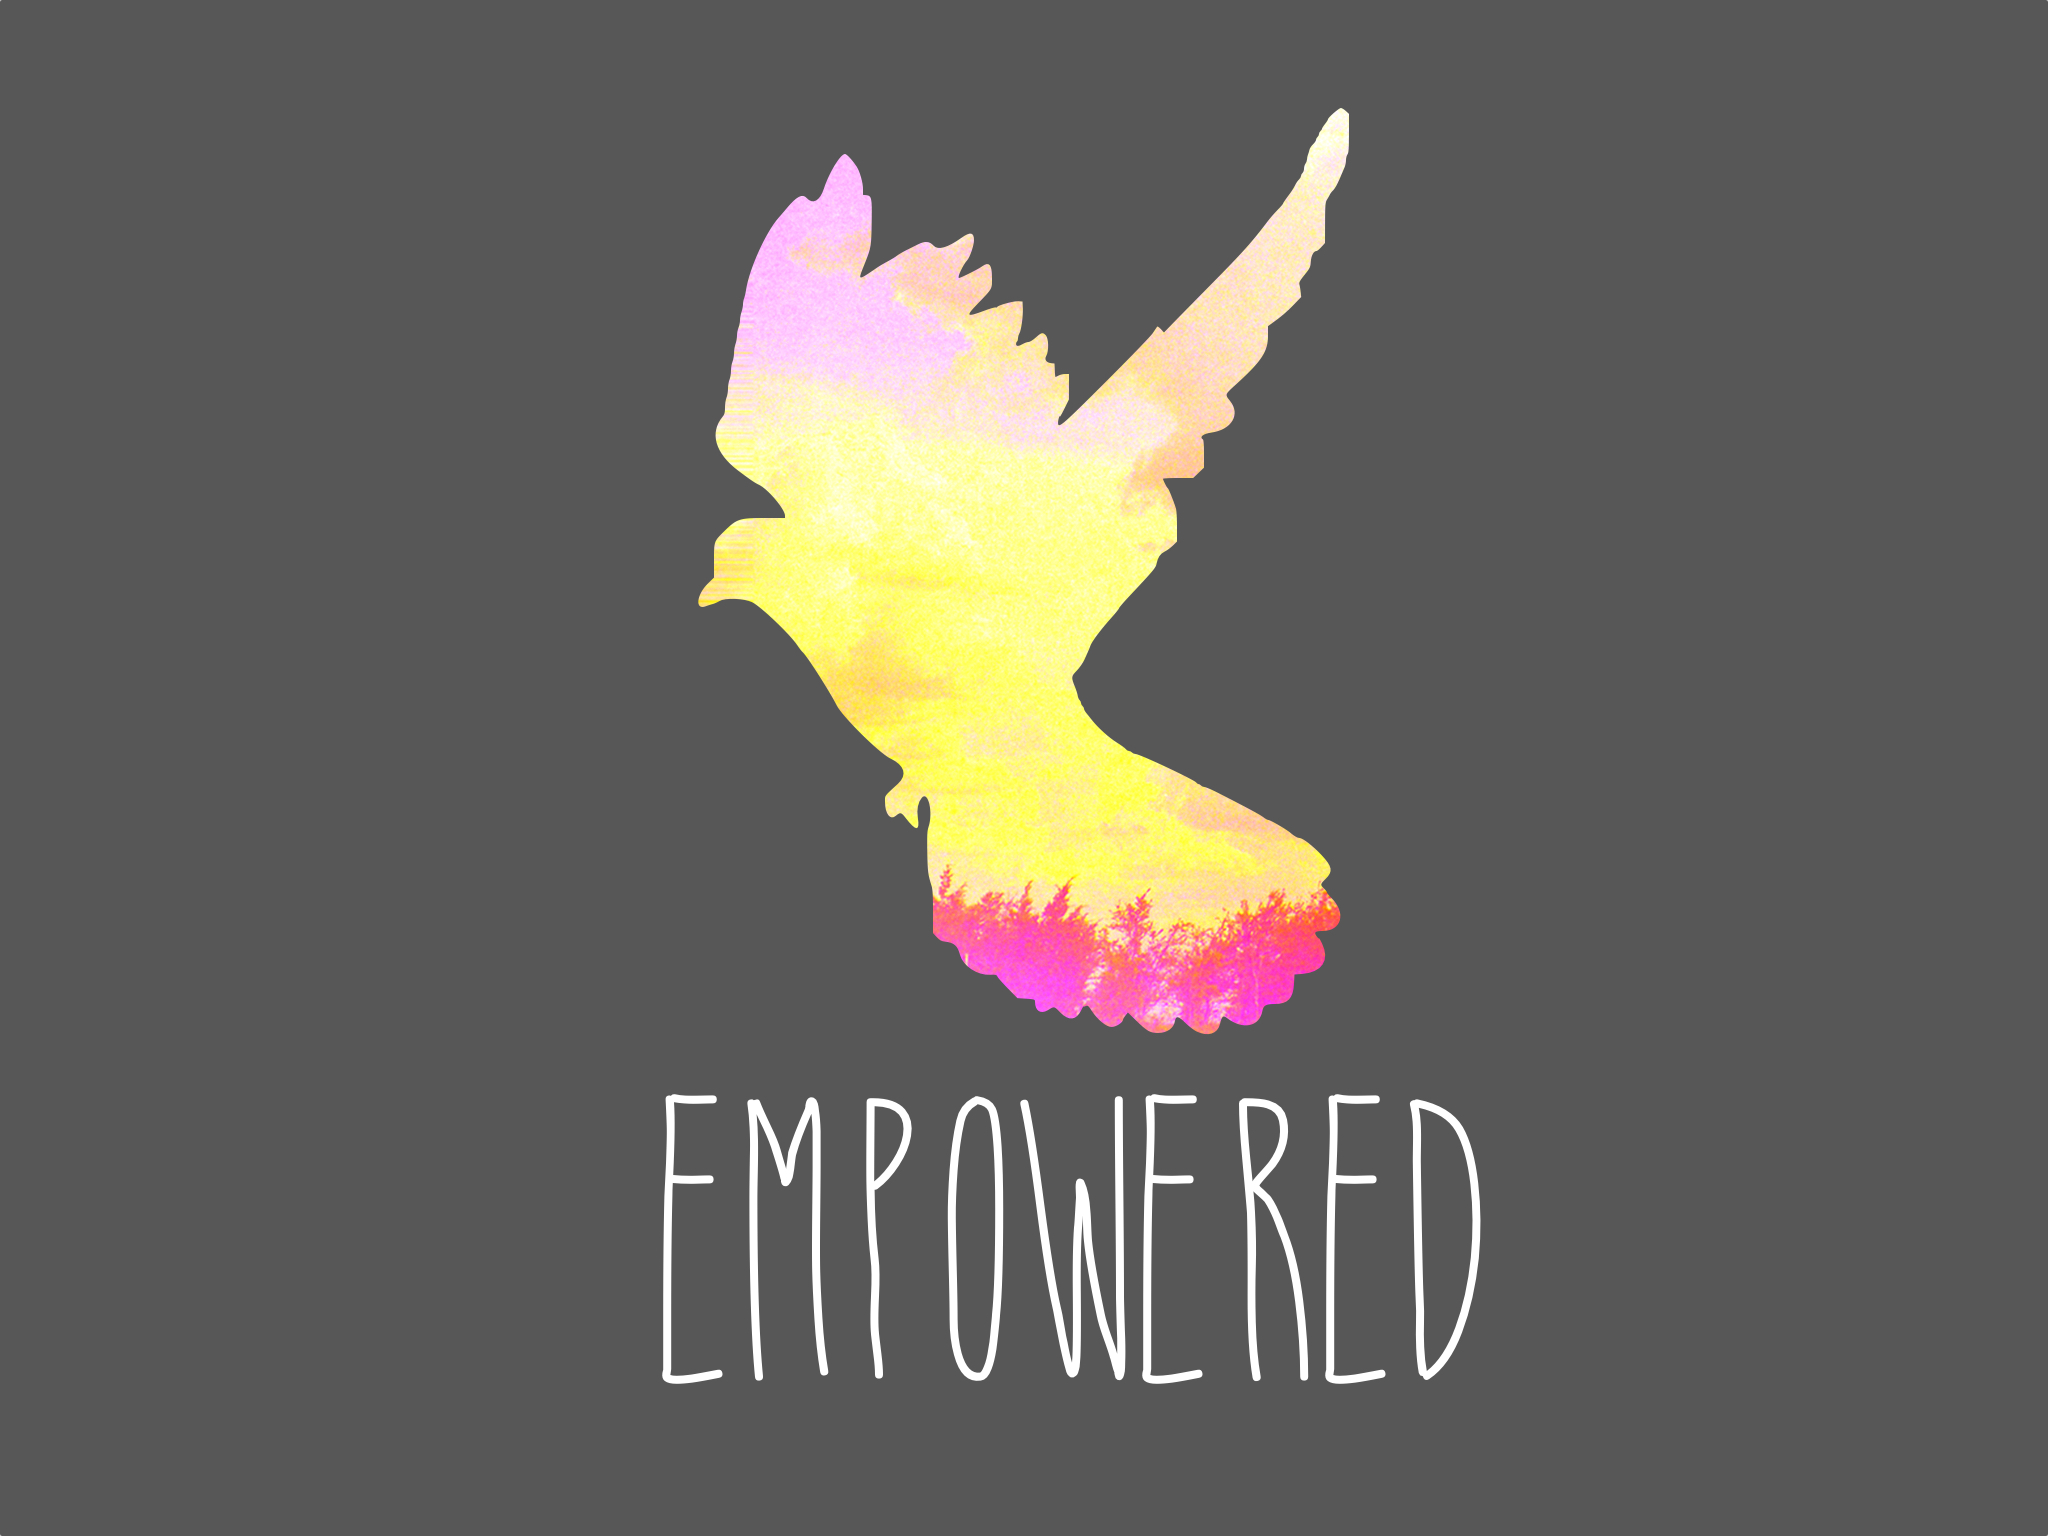 EMPOWERED    OCT 25 - NOV 8